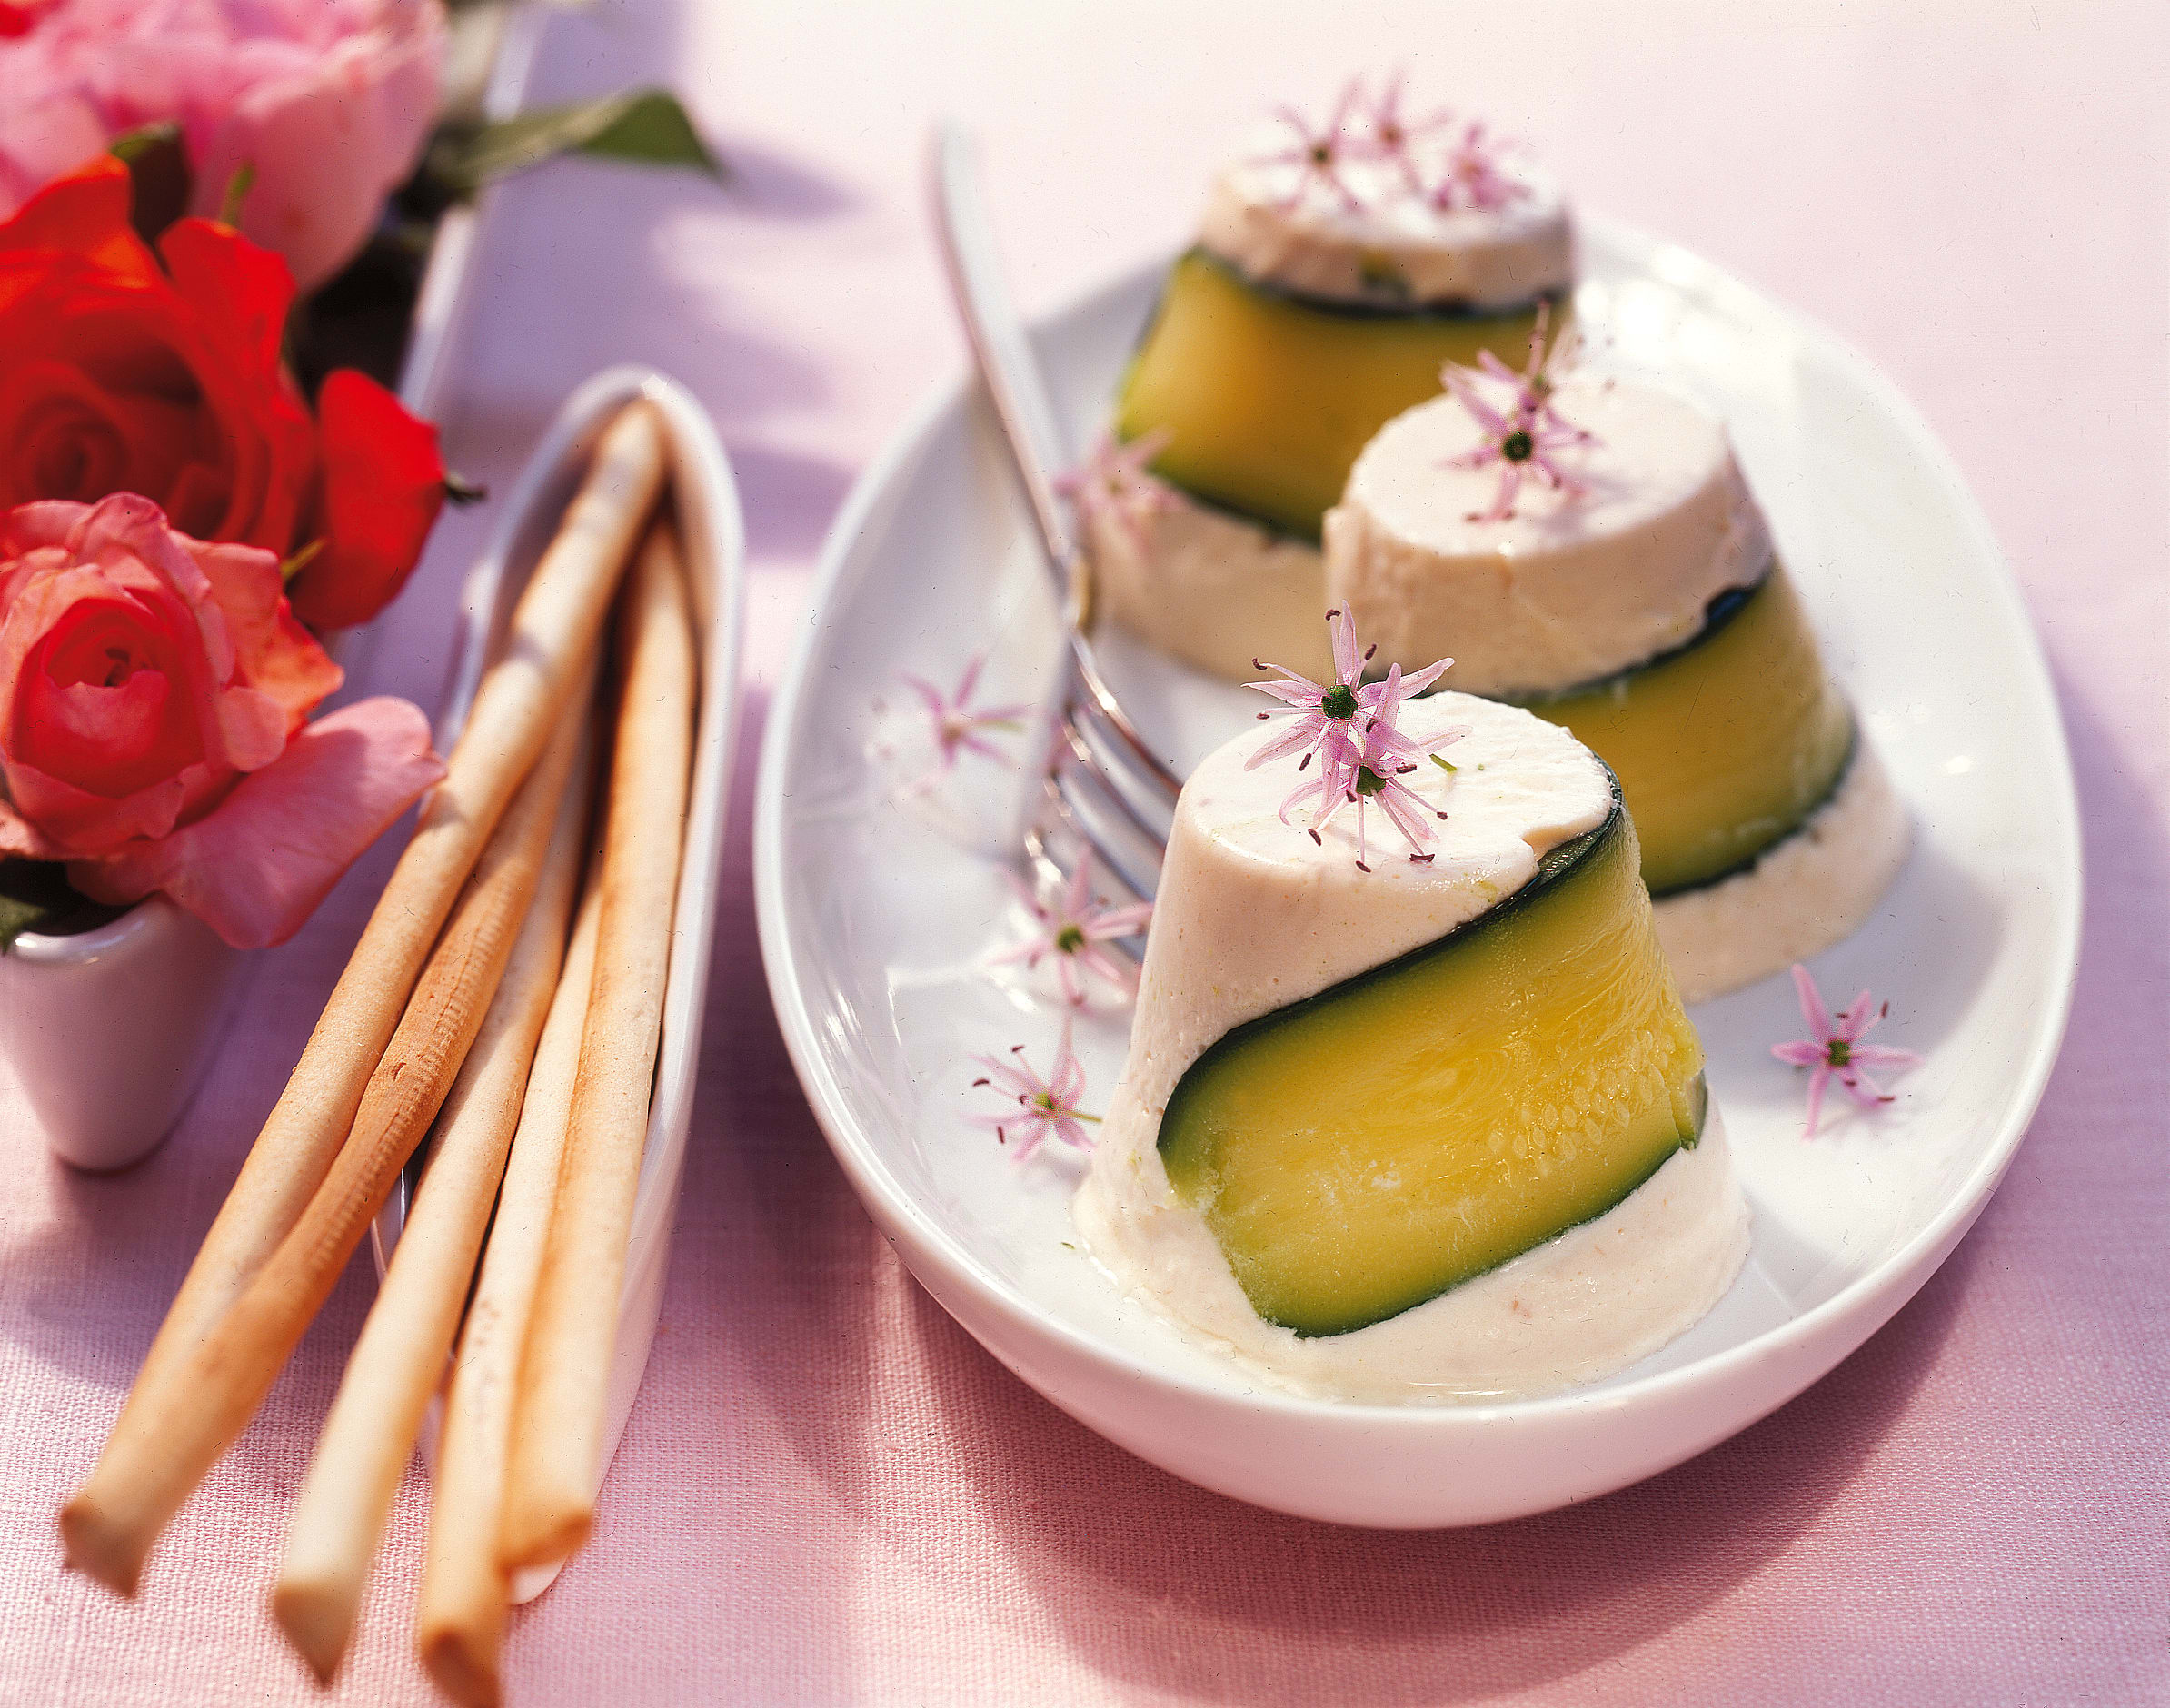 Zucchini-Timbales mit Forelle